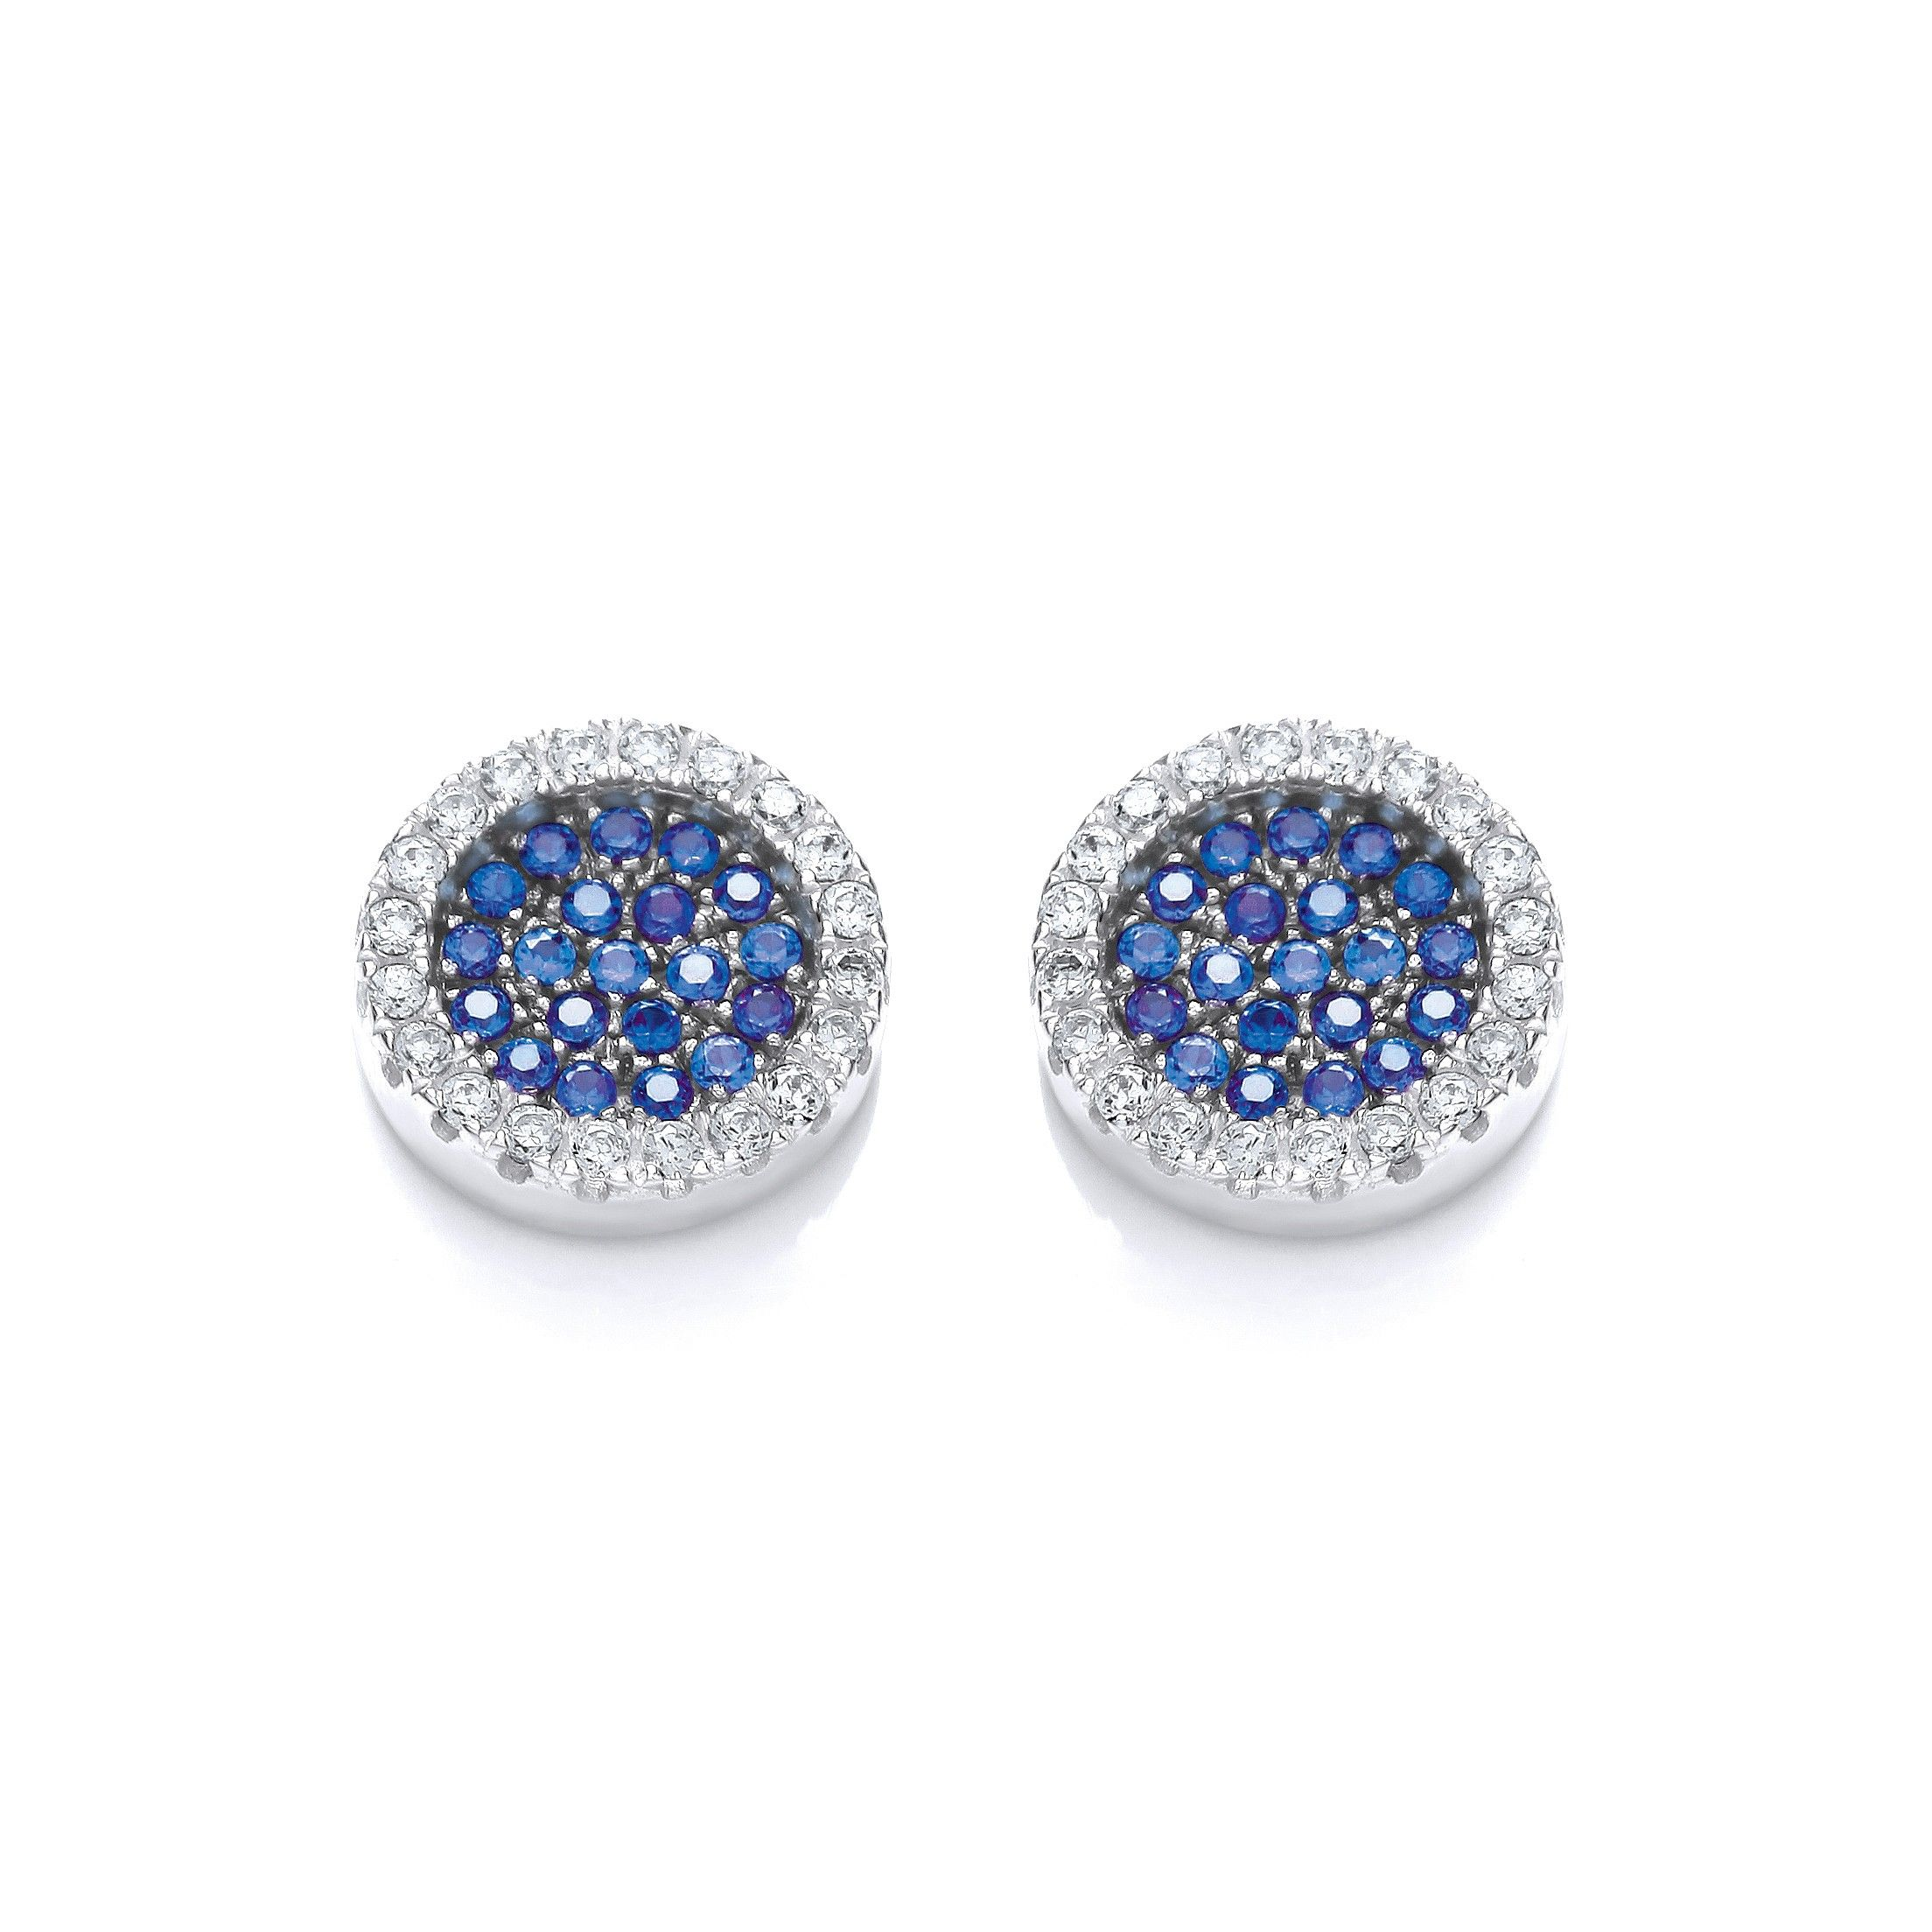 Cluster Stud Silver Earrings Set With Blue CZs Cubic Zirconia Silver